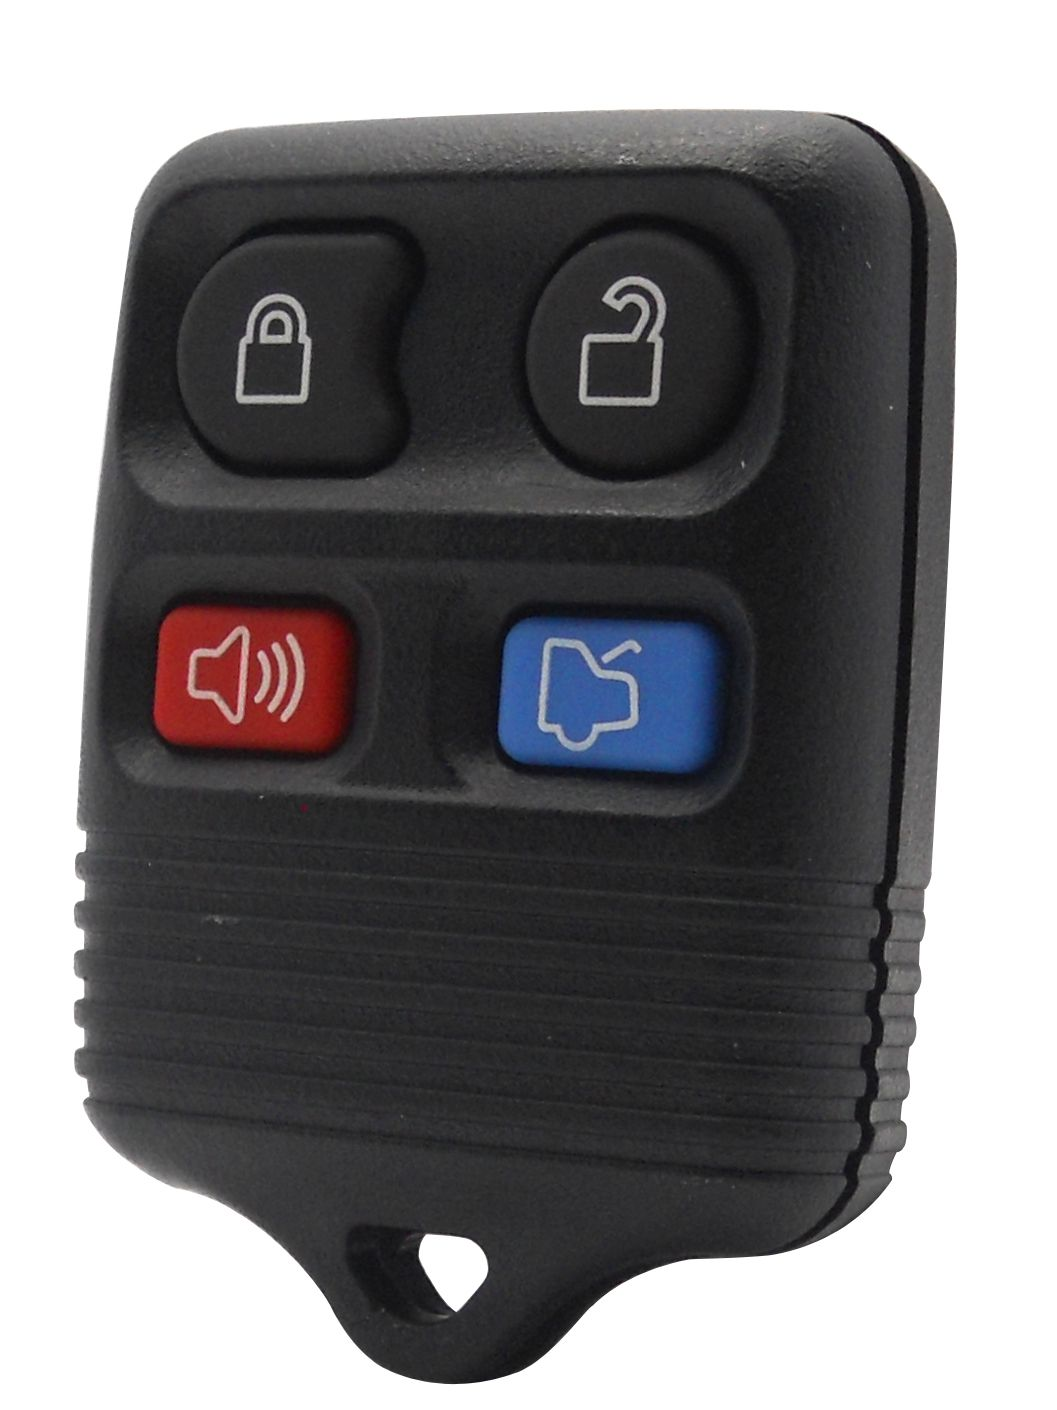 Keyless Entry Car Remote 4 Button w/ Trunk Release